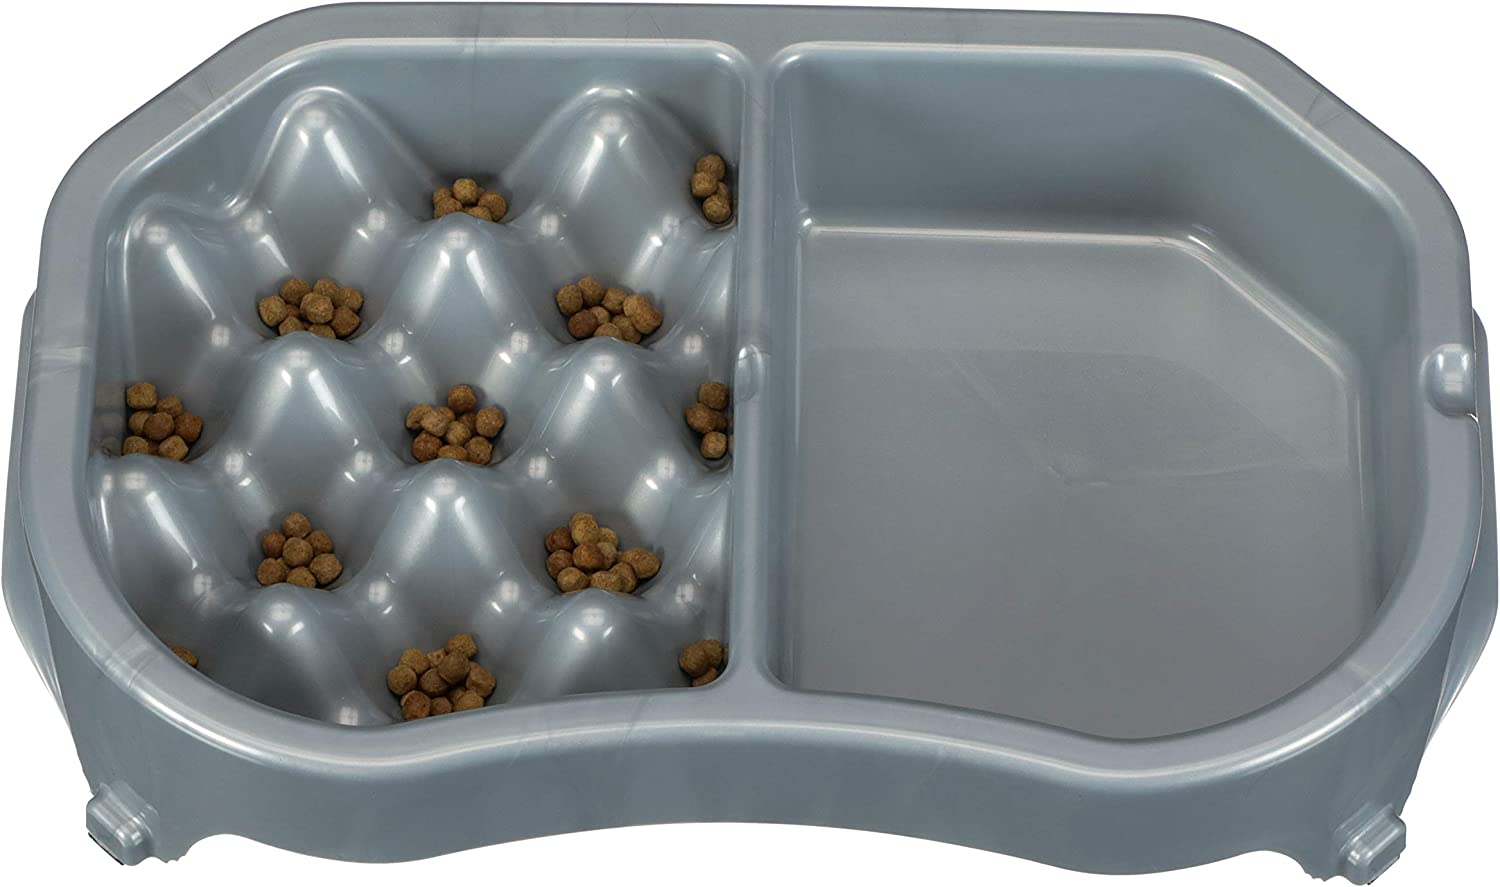 Neater Pet Brands - Neater Slow Feeder - Fun, Healthy, Stress Free Dog Bowl Helps Stop Bloat Prevents Obesity Improves Digestion (Double Diner, Silver Metallic)